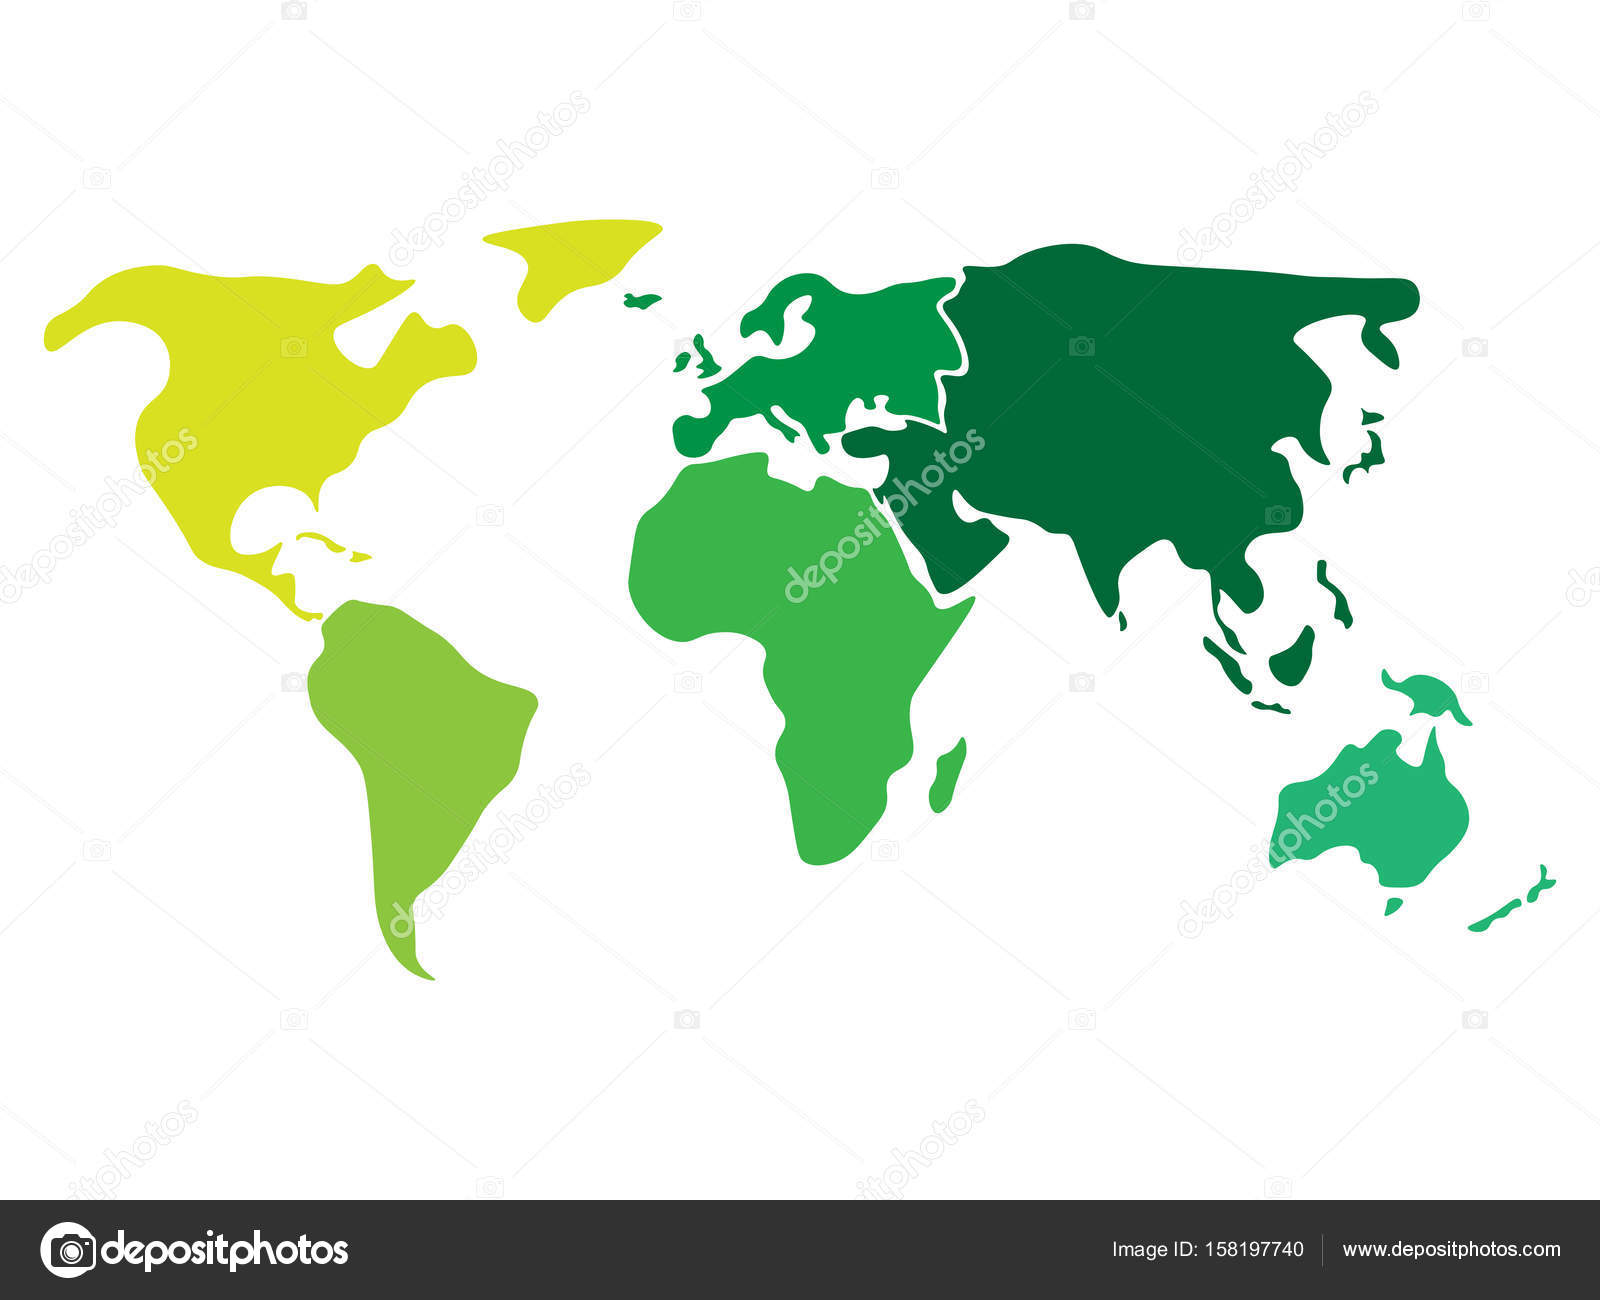 multicolored world map divided to six continents in different colors rh depositphotos com north america vector map with states and provinces north america vector map with states